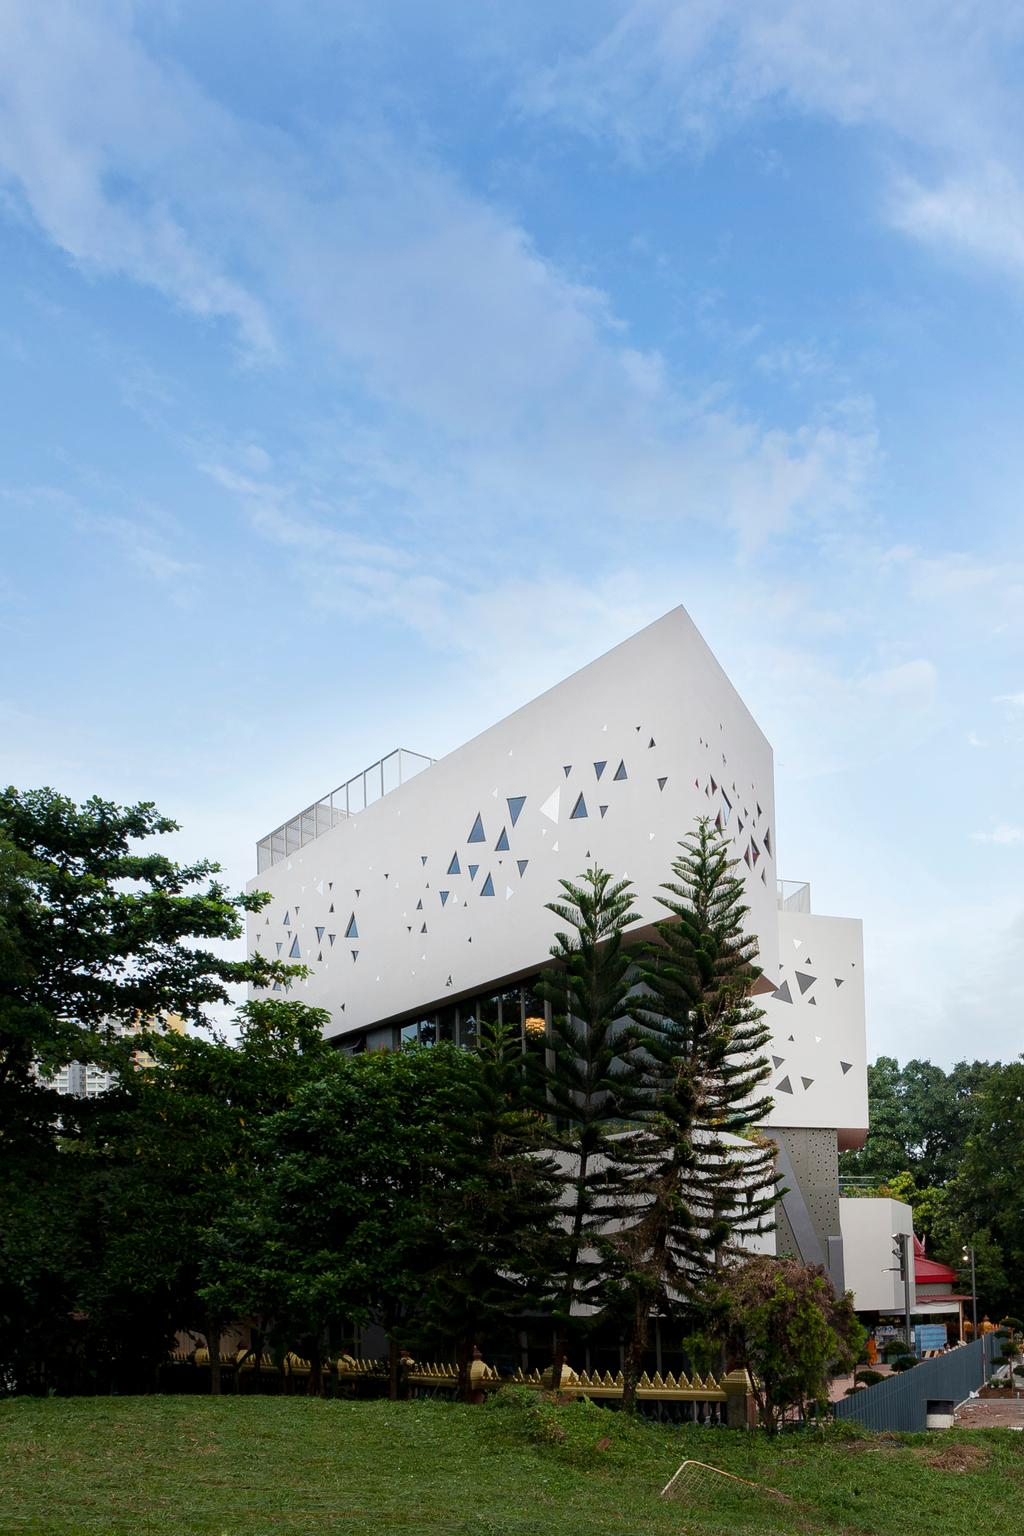 Wat Ananda Metyarama, Commercial, Architect, Czarl Architects, Minimalist, Building, Office Building, Ancient Egypt, Architecture, Pyramid, Flora, Plant, Tree, Conifer, Yew